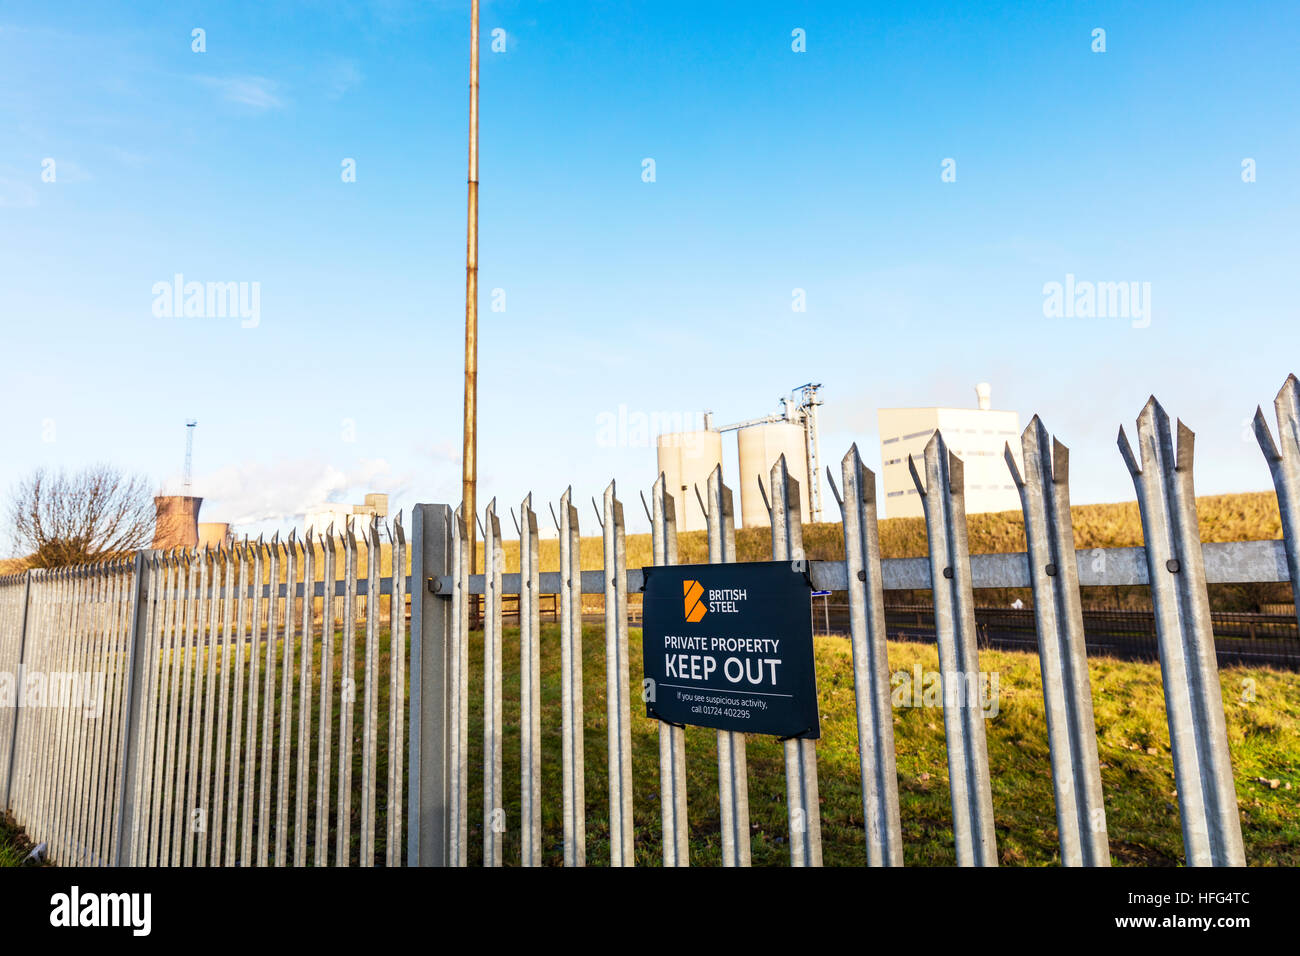 British steel Scunthorpe, Scunthorpe steelworks keep out sign on fence in town in North Lincolnshire, England UK - Stock Image